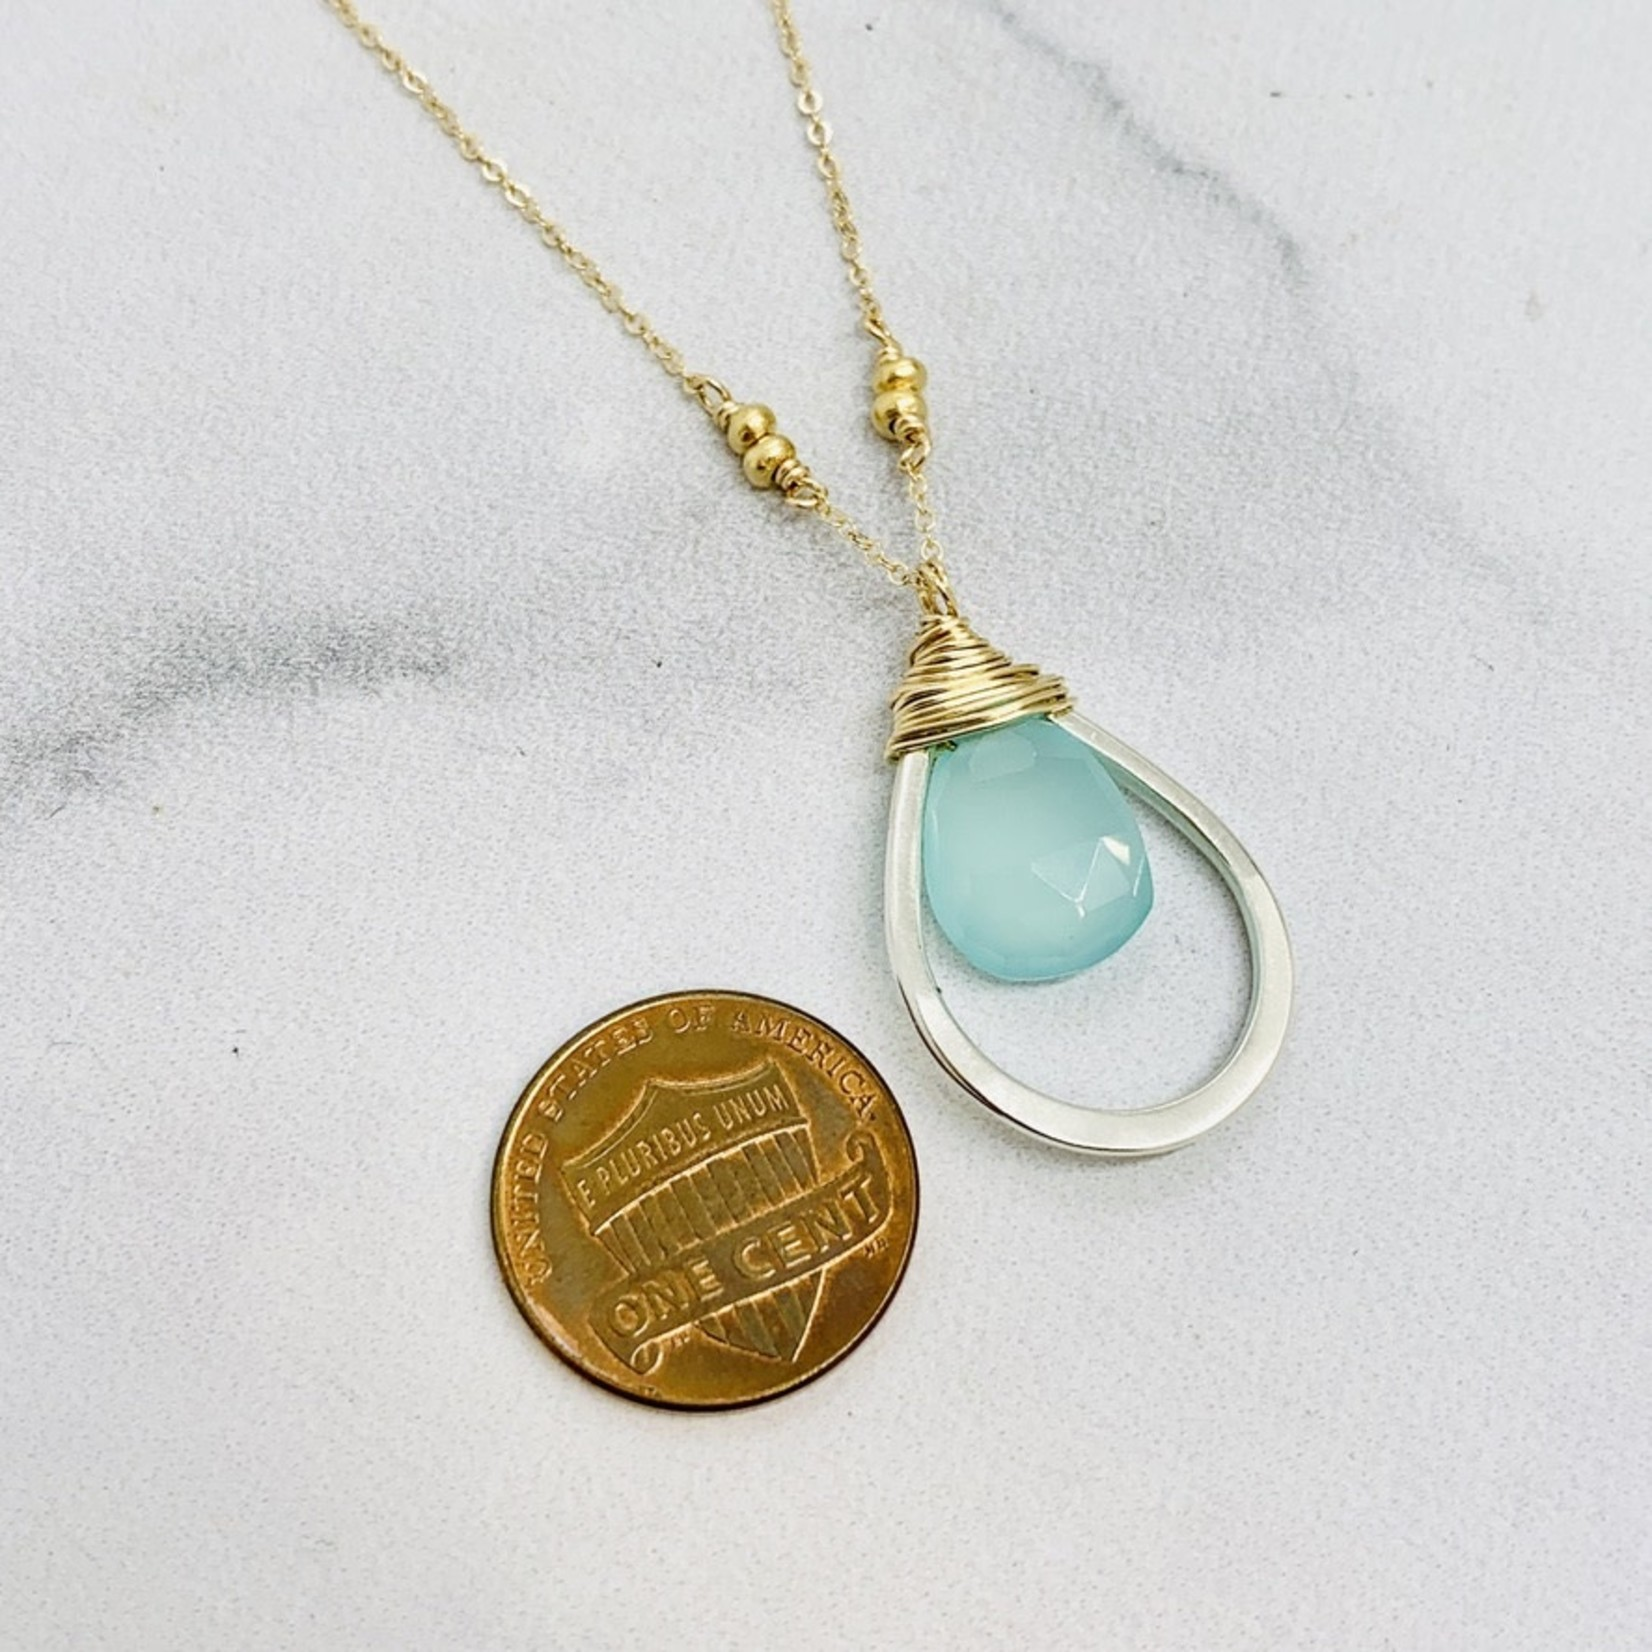 Handmade necklace with aqua chalcedony teardrop wrapped in 14k gf and nested in sterling teardrop on 16-in goldfill chain